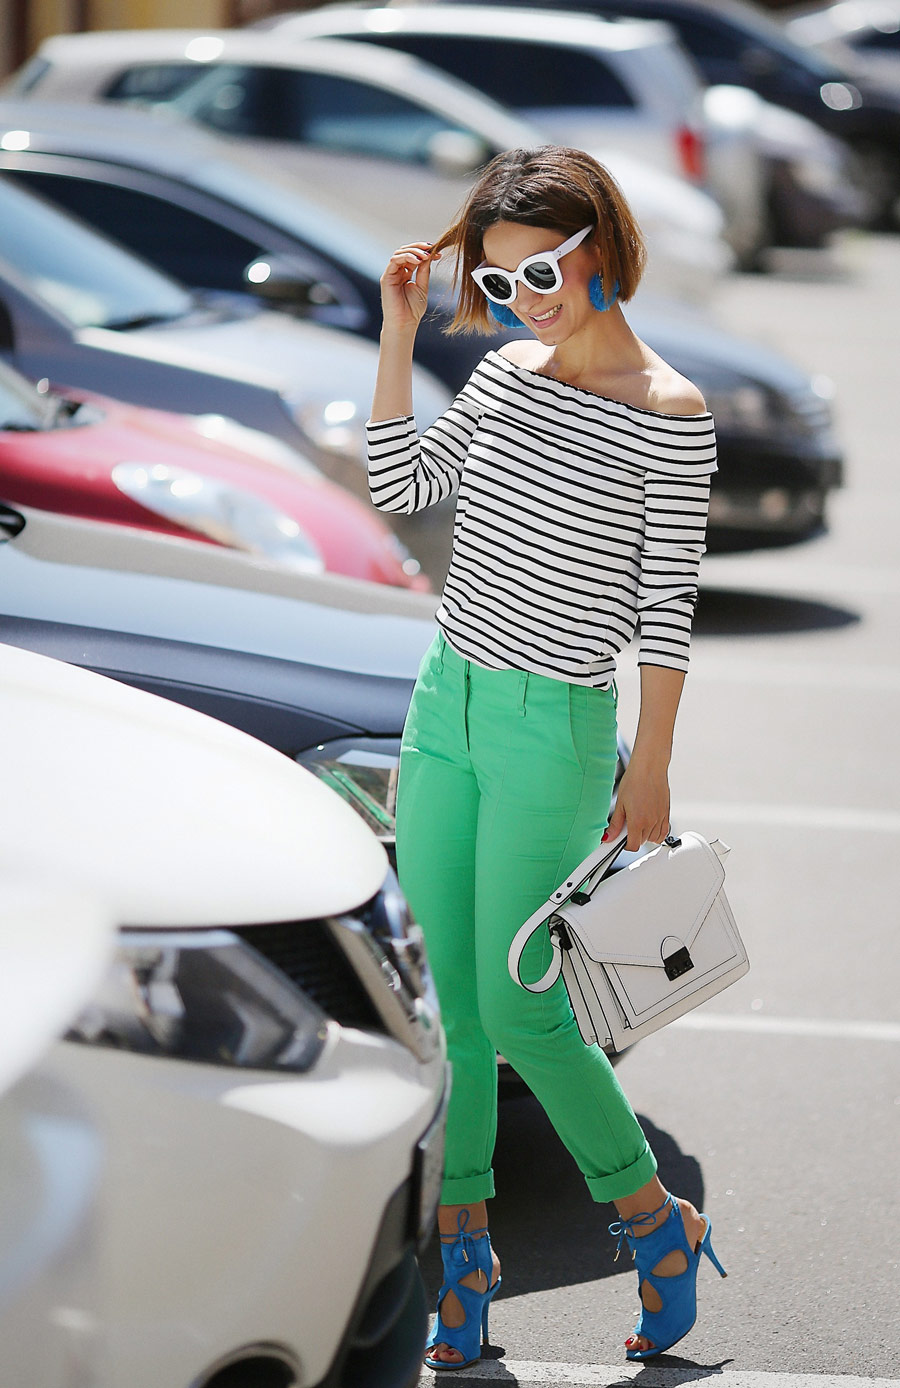 off_the_shoulder_top_outfits_to_try_this_summer